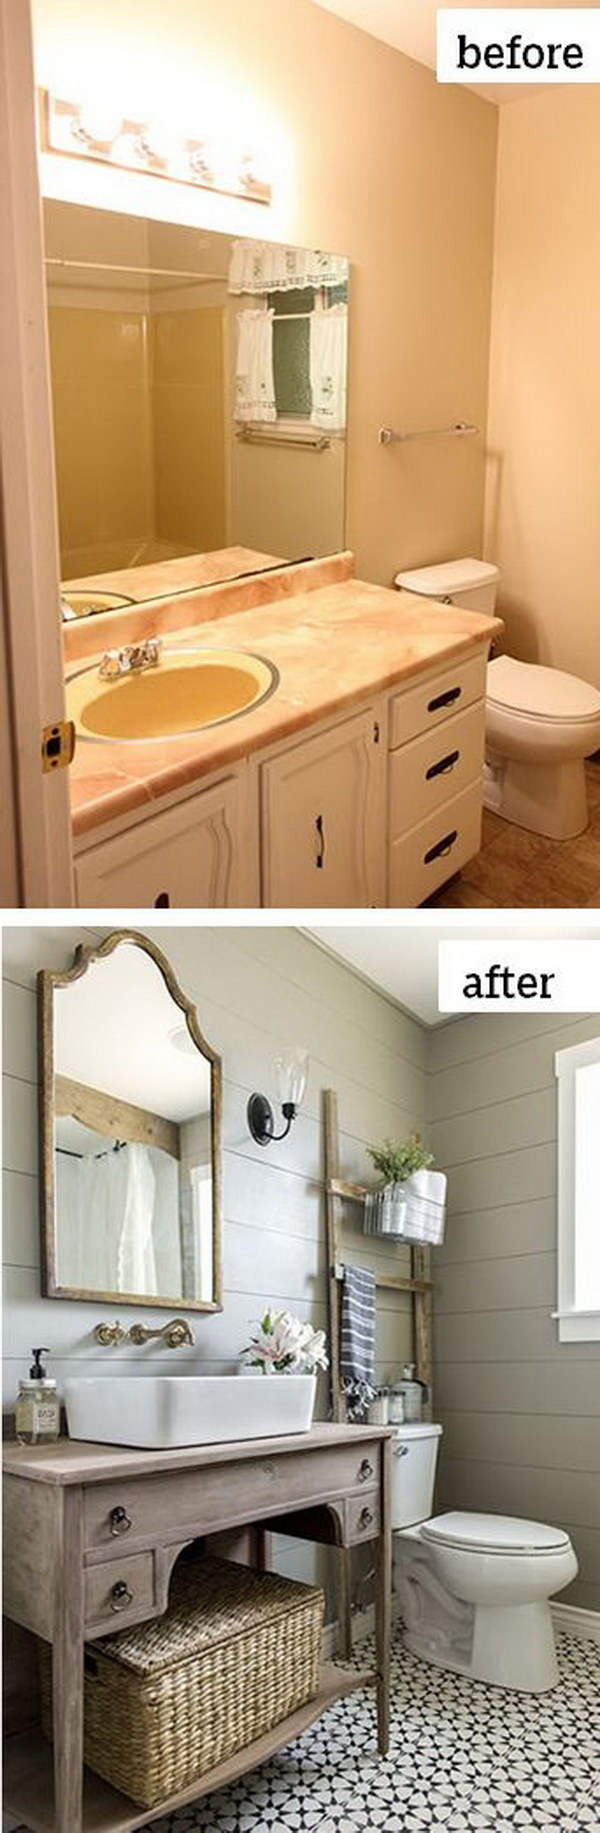 Before and after makeovers 20 most beautiful bathroom for Bathroom renovation designs ideas